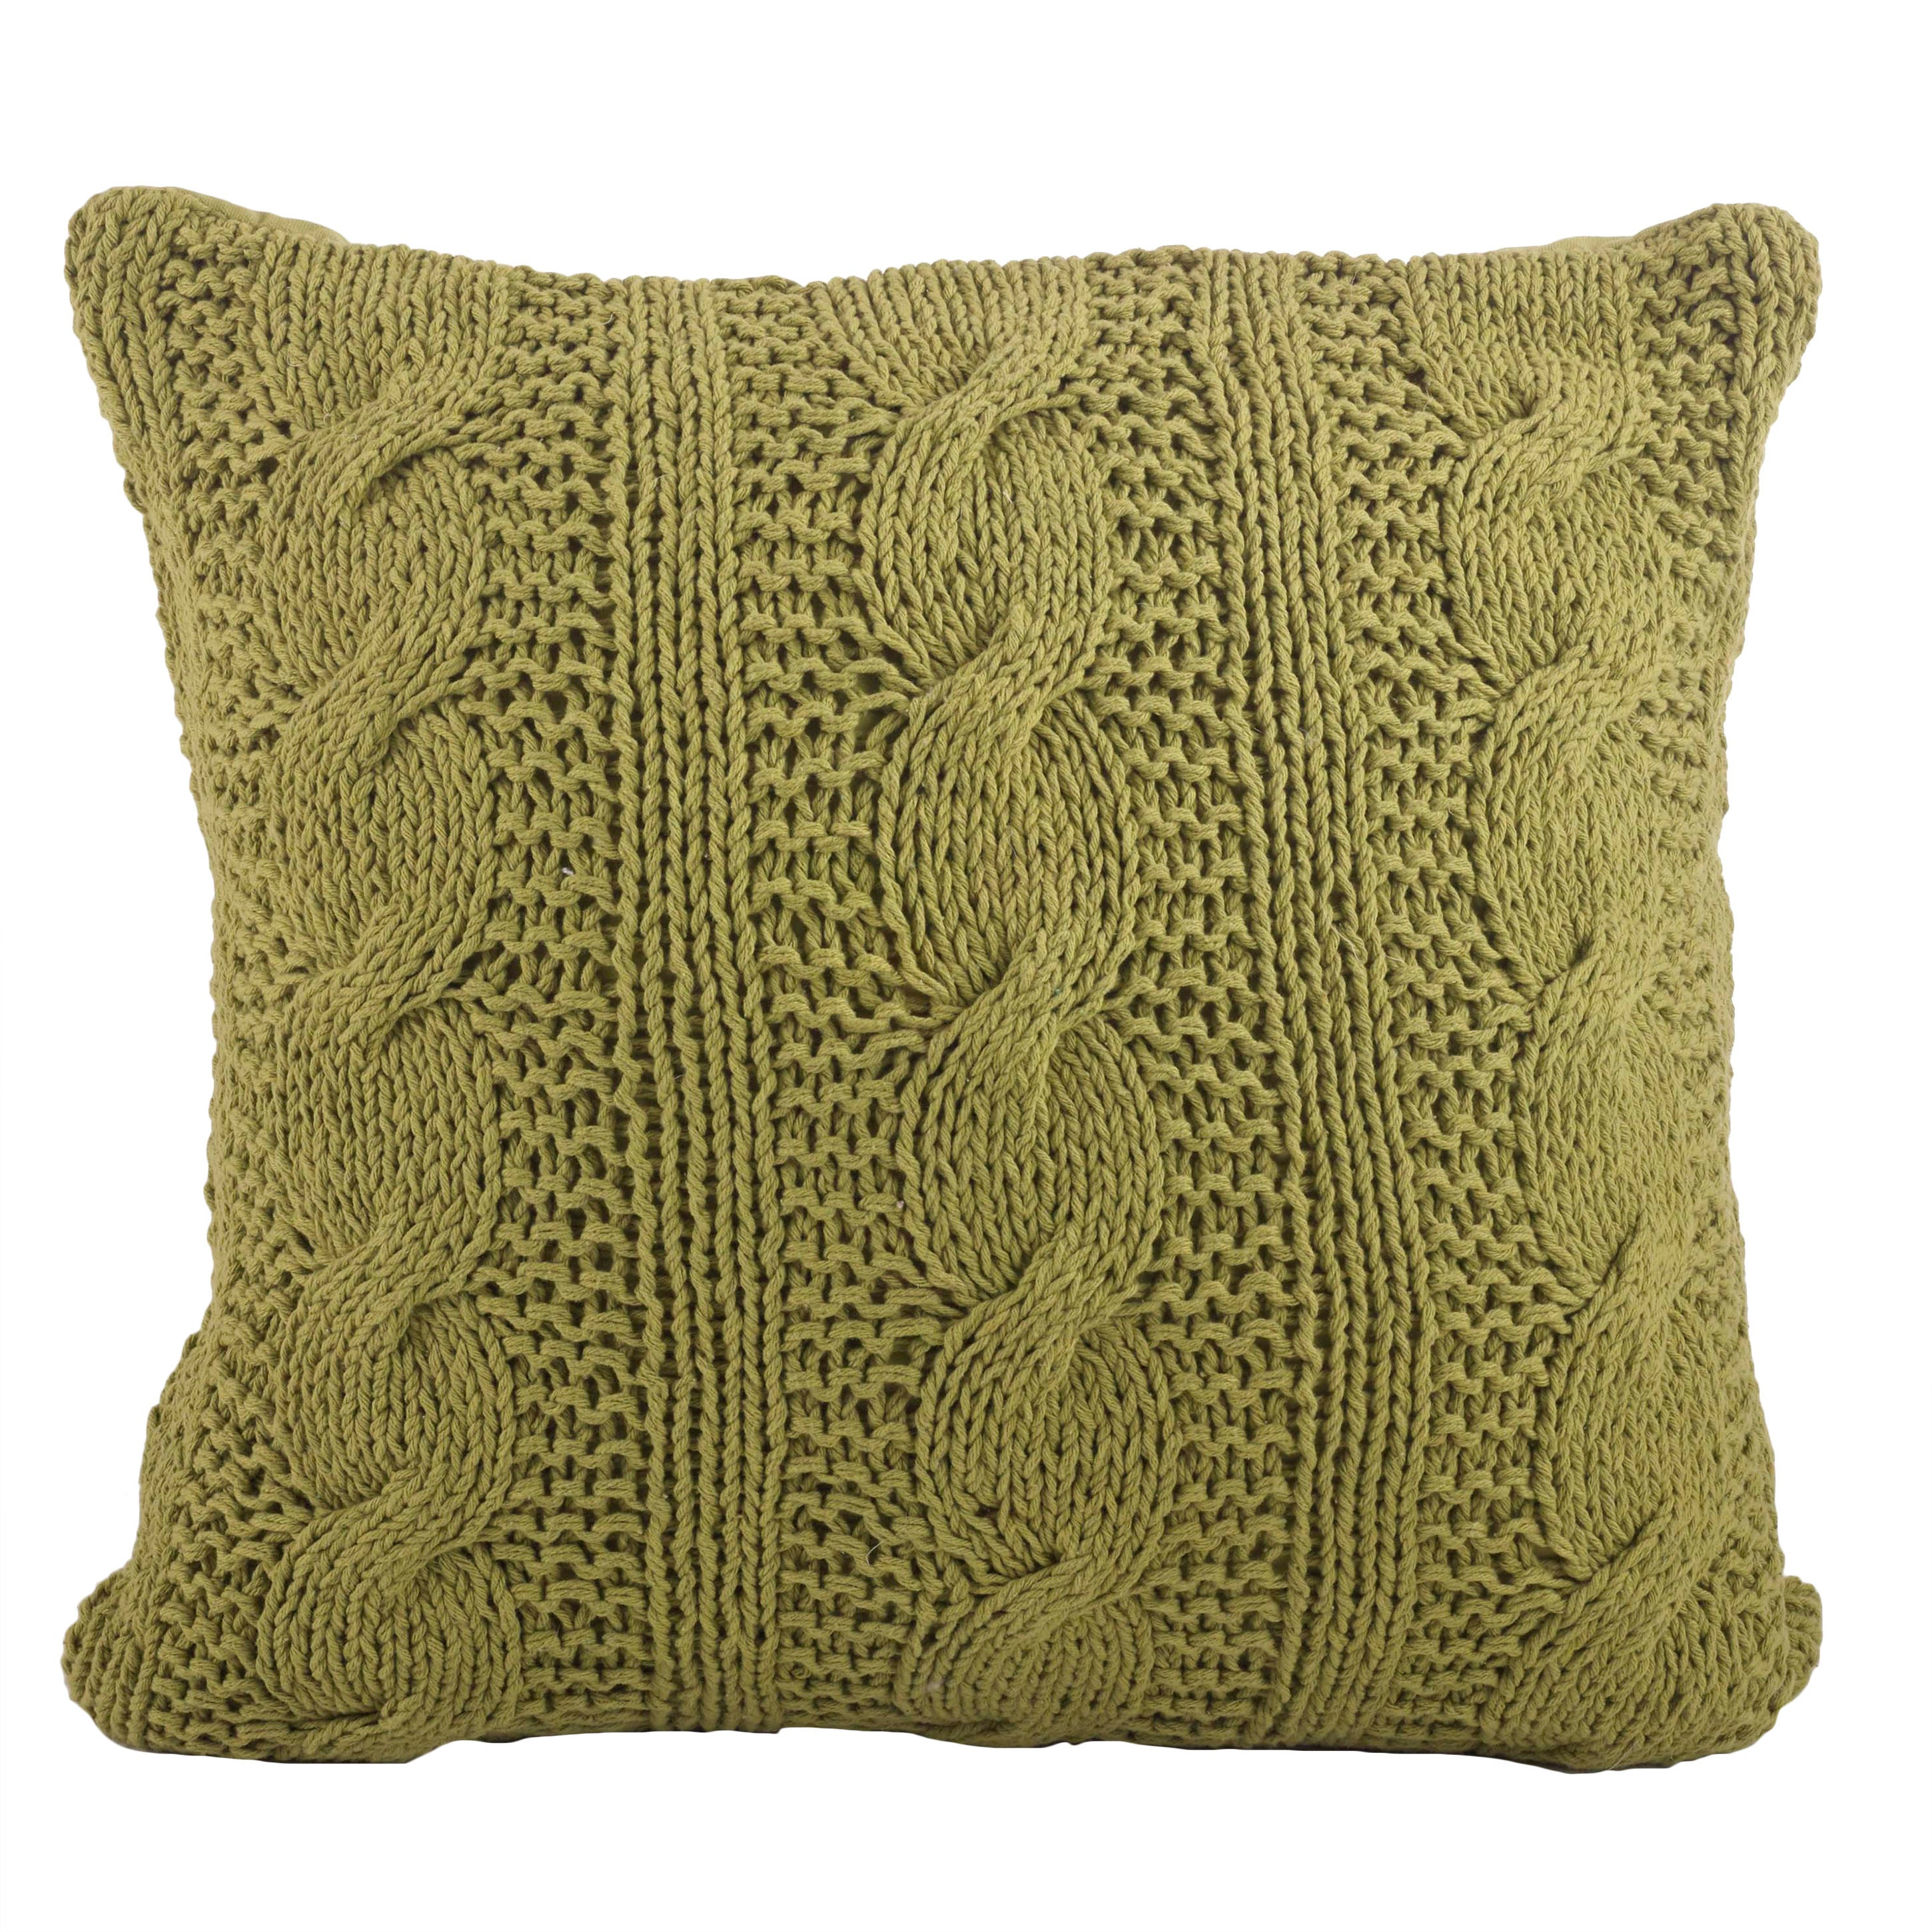 Knitting Pillows : Cable knit design throw pillow overstock shopping